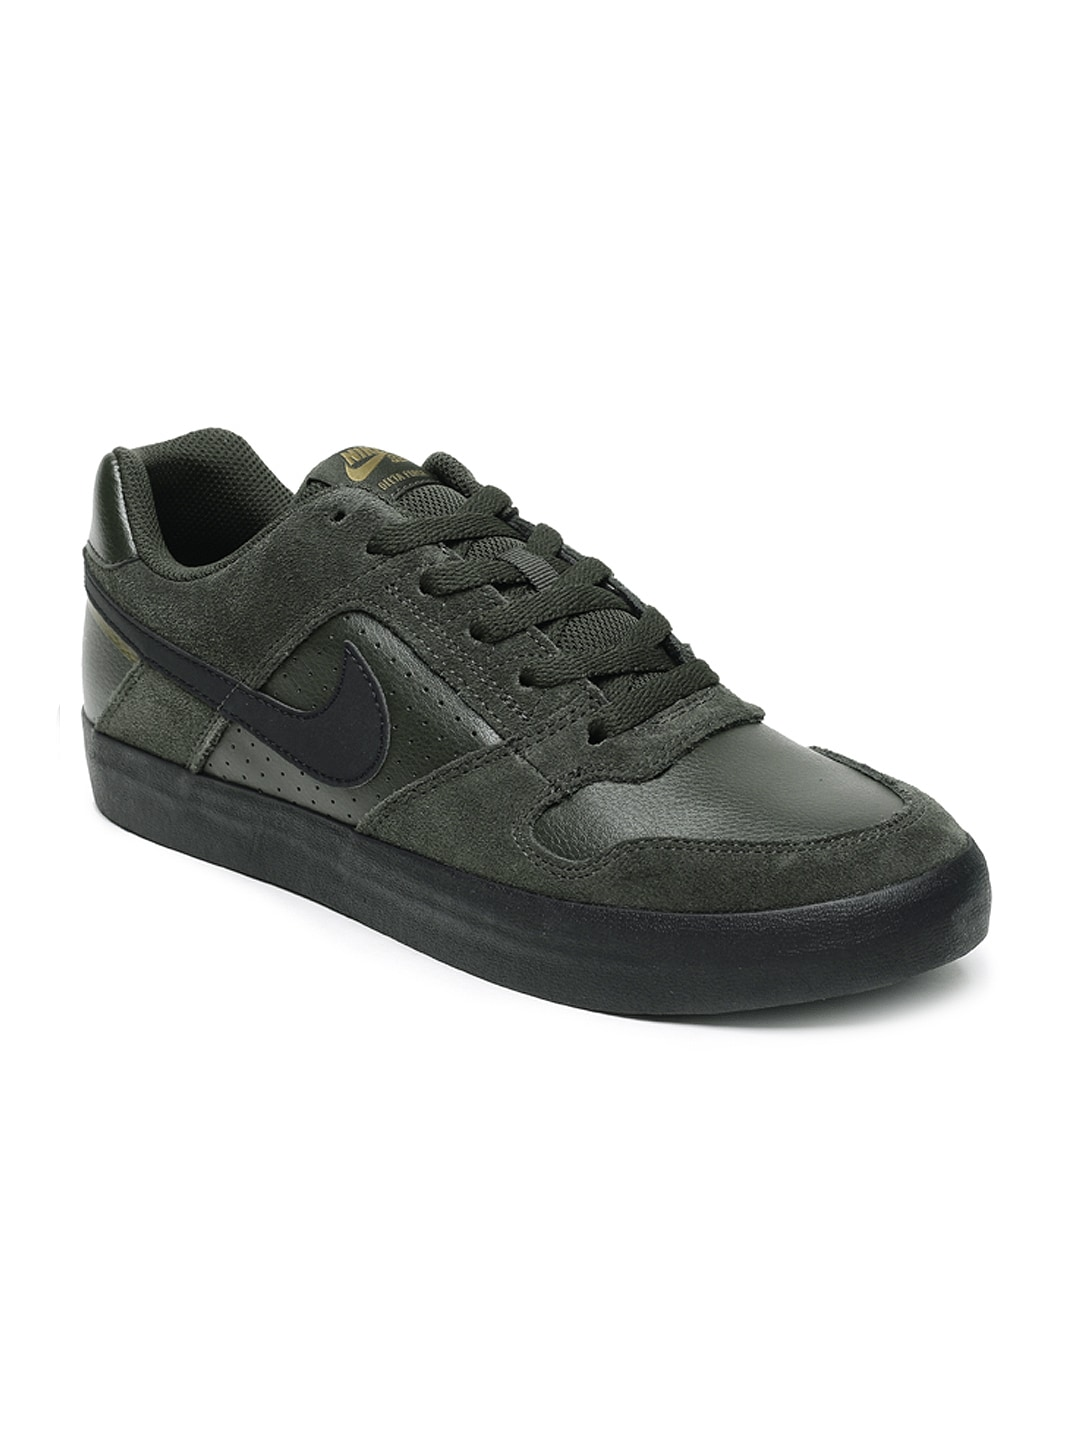 timeless design 004c7 d26e5 Nike Shoes - Buy Nike Shoes for Men, Women   Kids Online   Myntra